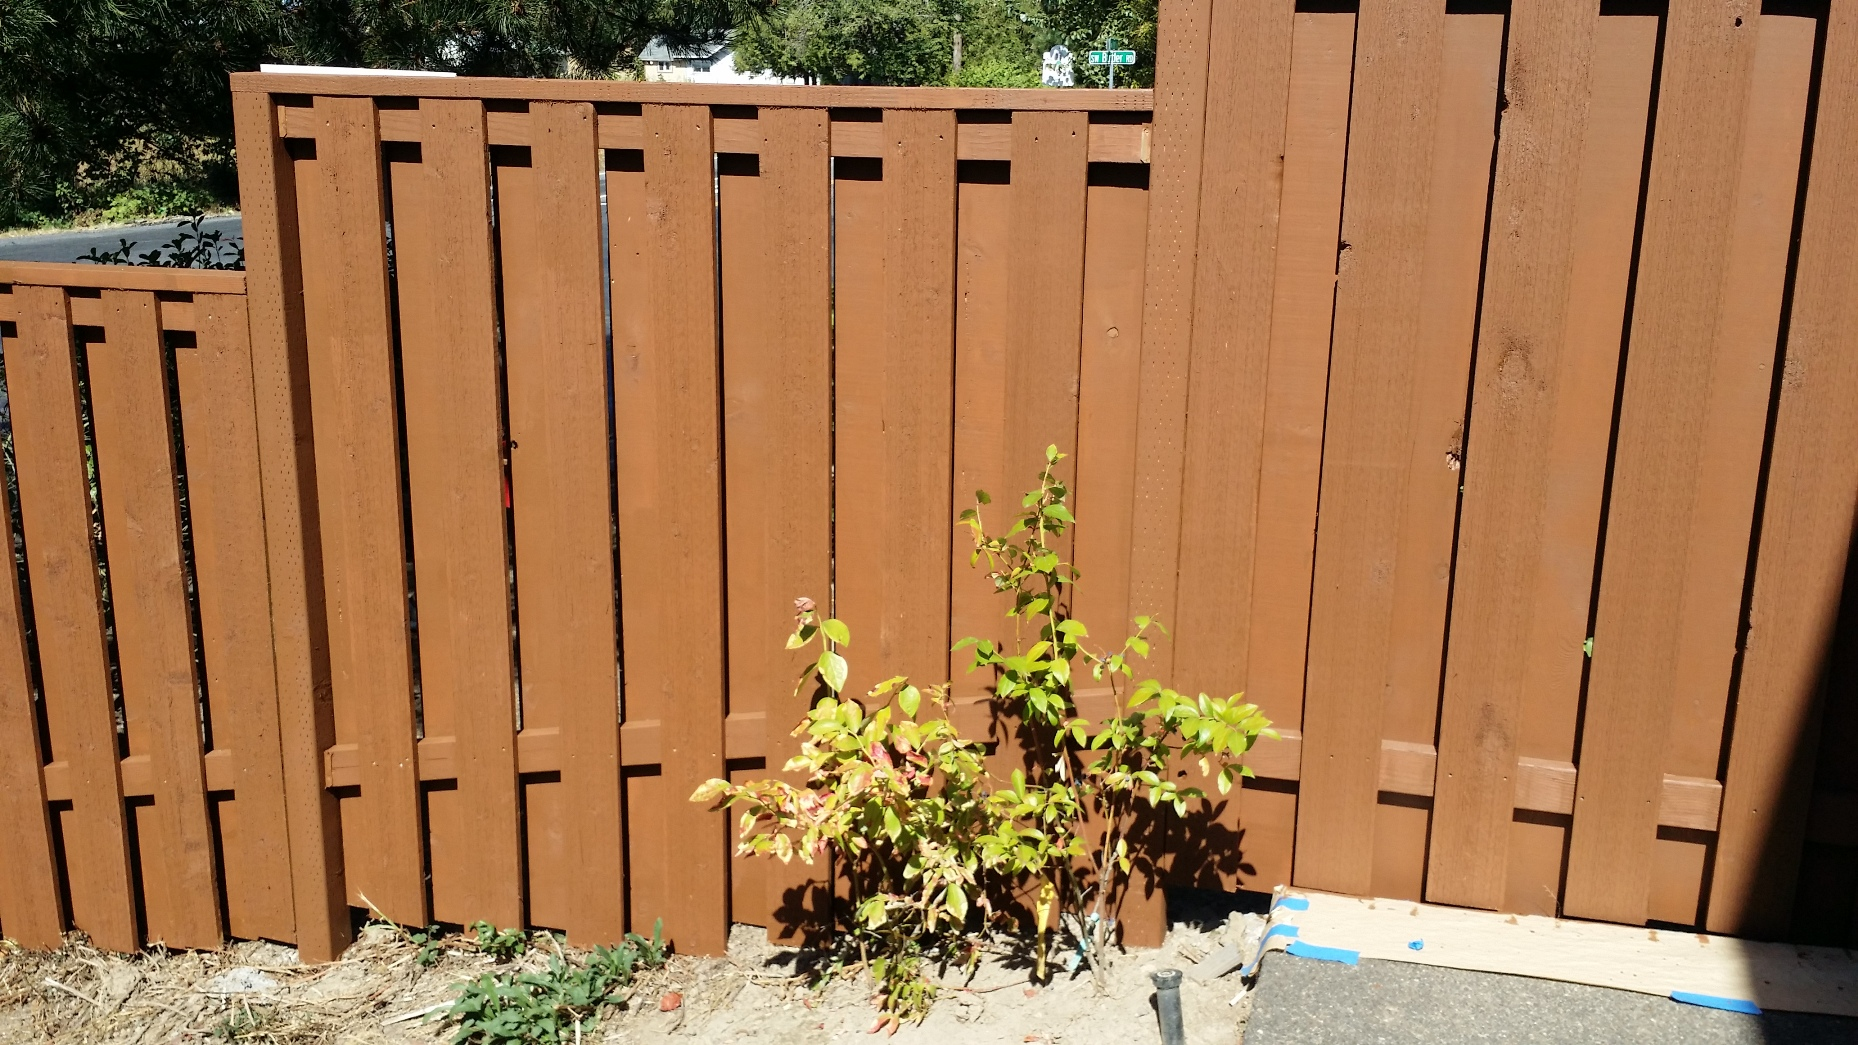 Tampa fence repair quote, Tampa fence contractor, Tampa fencing company, Fence Repair Tampa, Tampa fencing repair